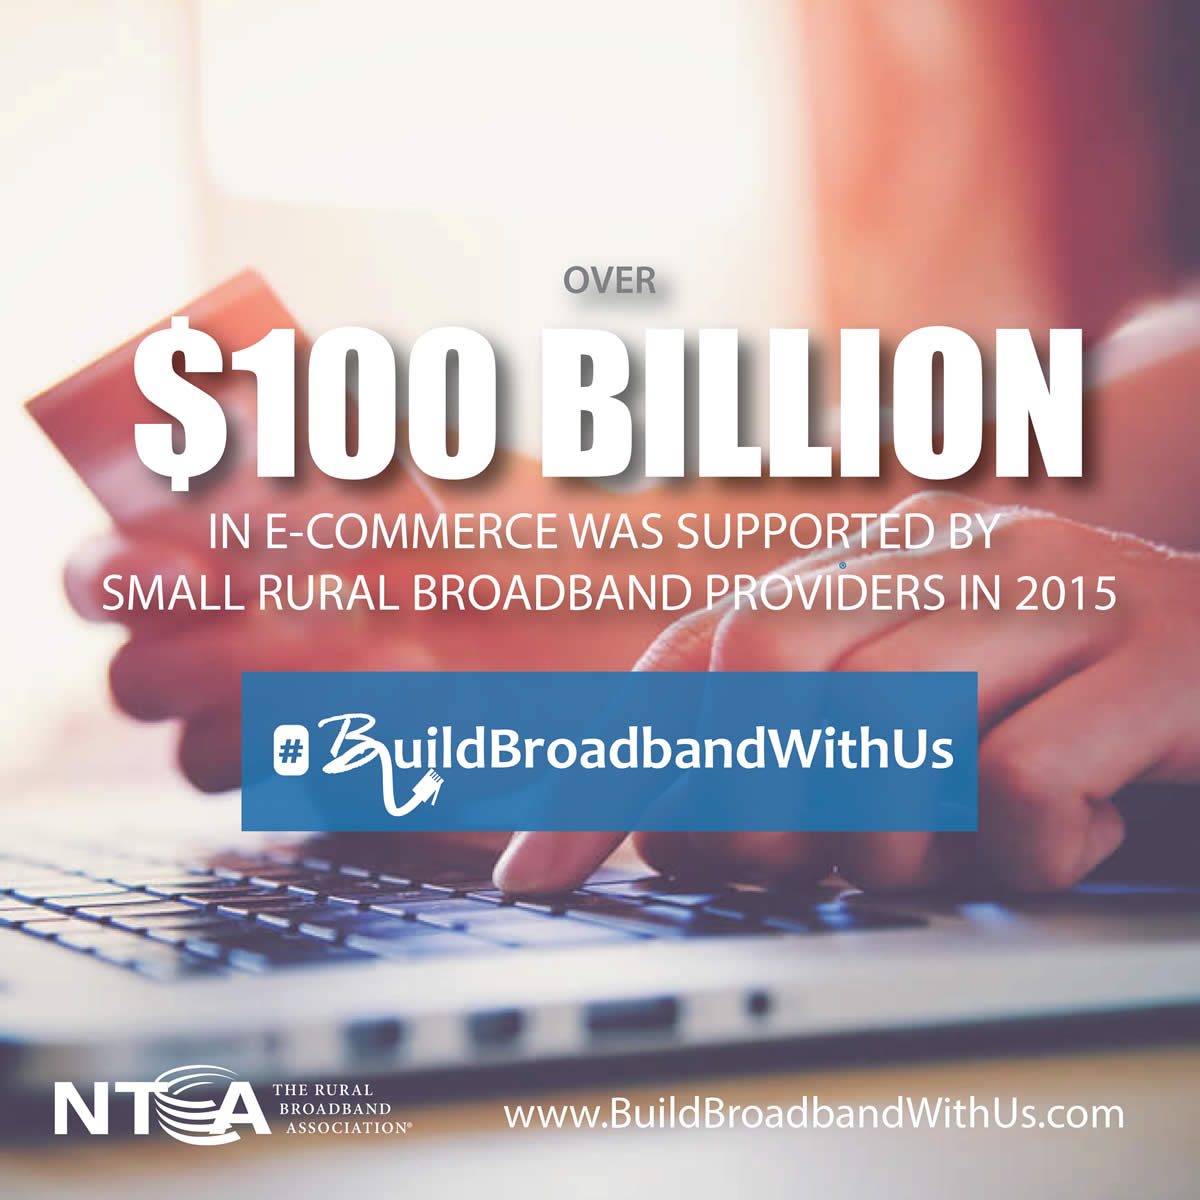 Over $100 Billion in E-Commerce was supported by small rural broadband providers in 2015